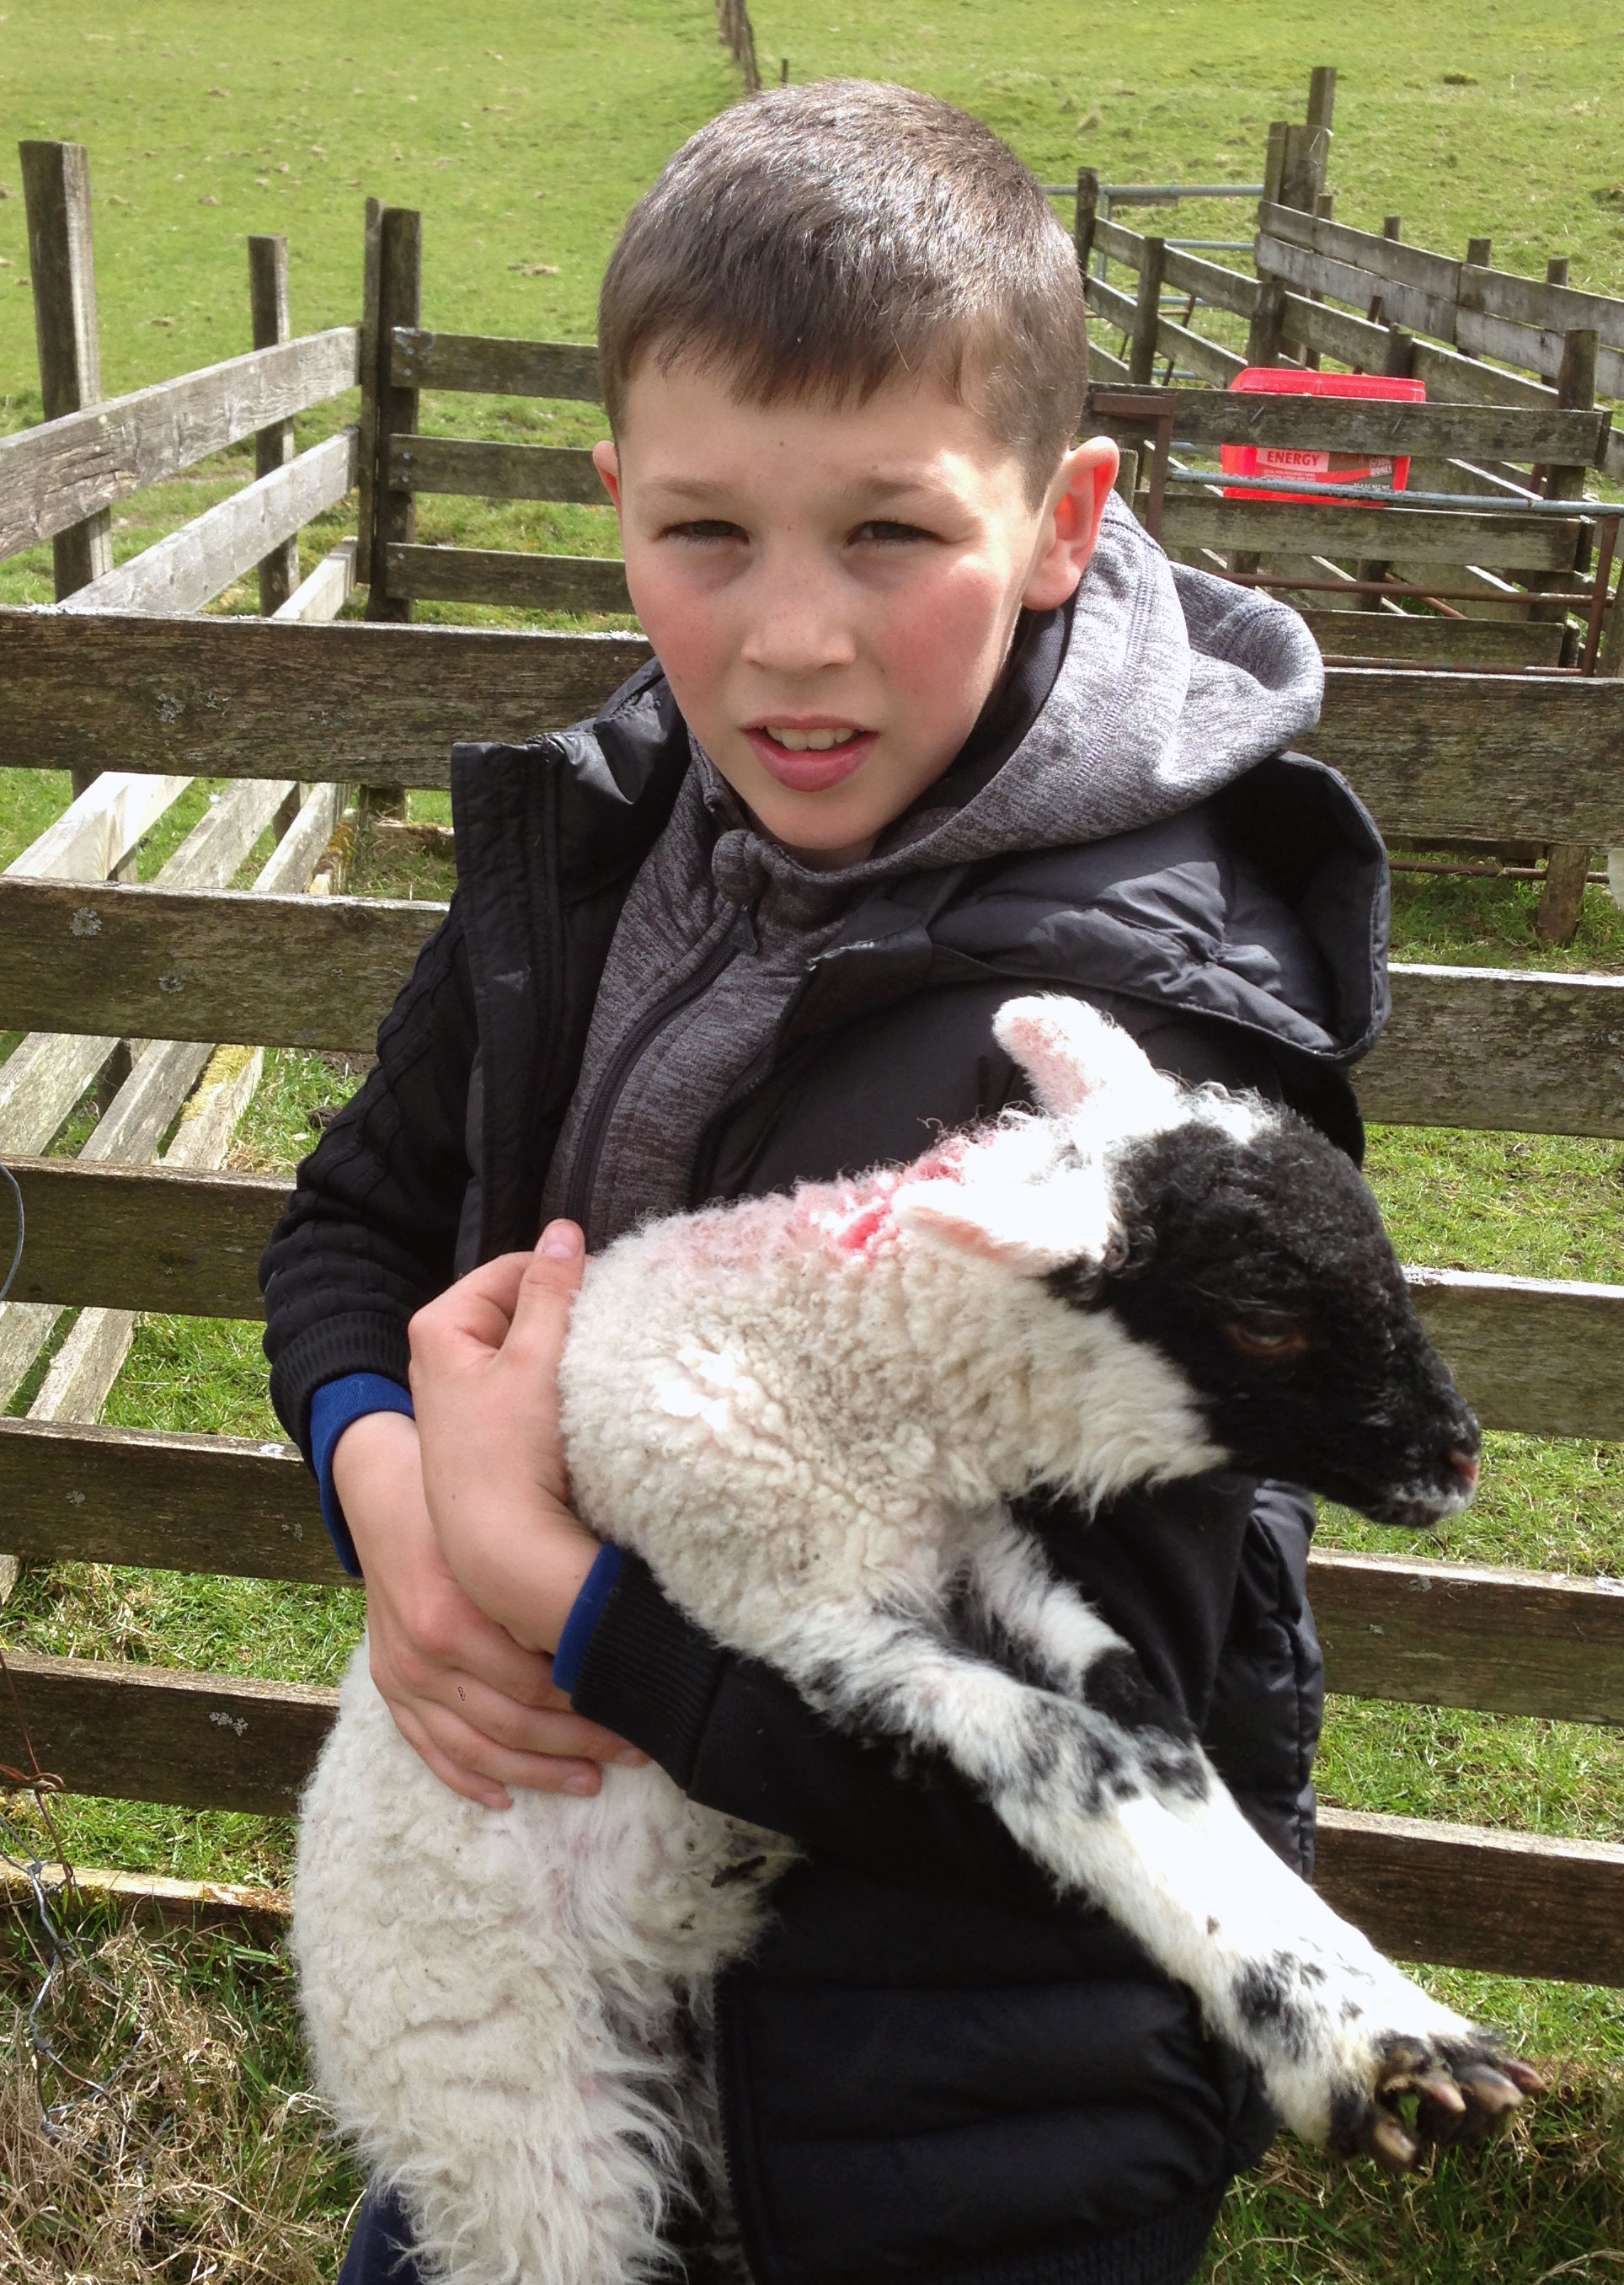 Lambing in the Yorkshire Dales